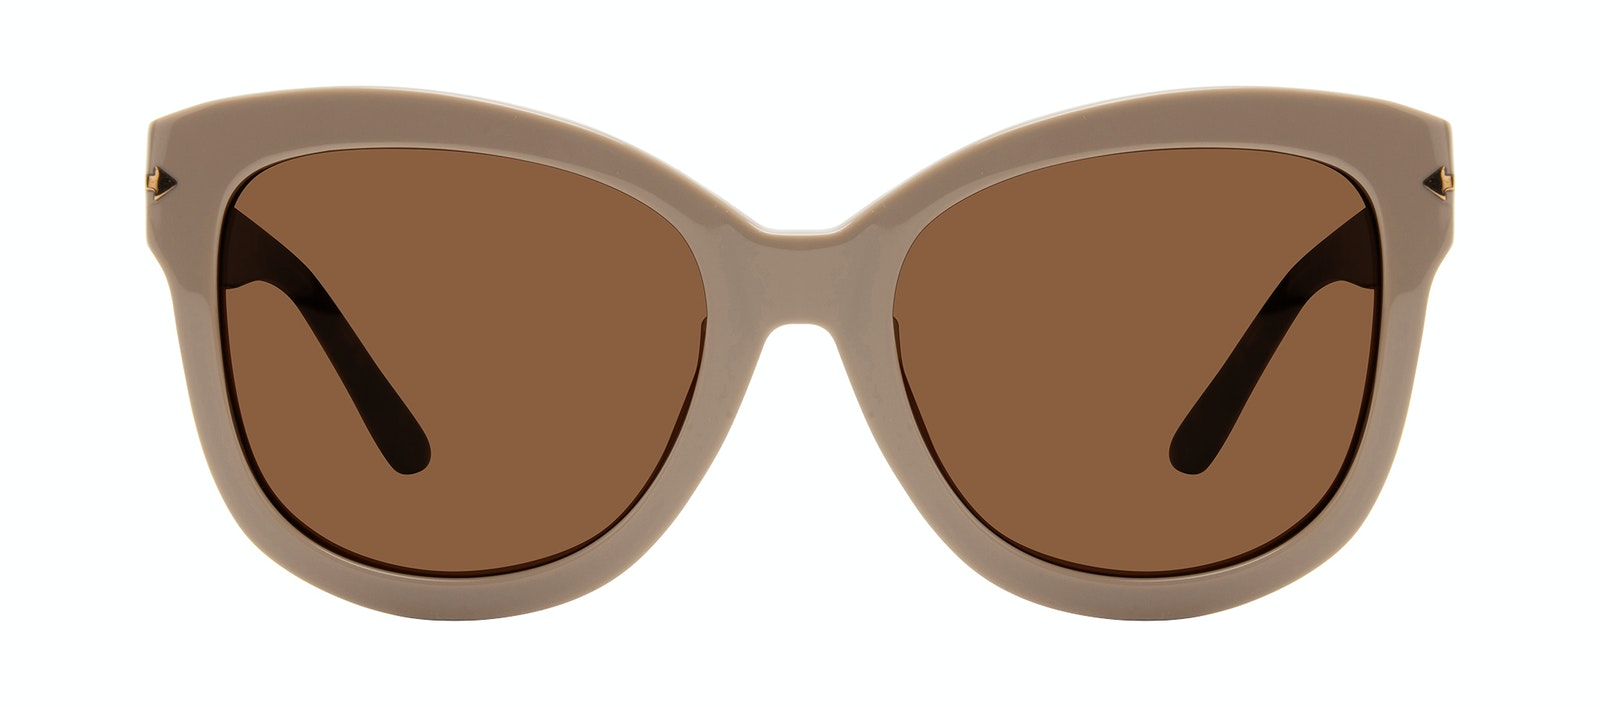 Affordable Fashion Glasses Square Sunglasses Women Marlo Latte Front